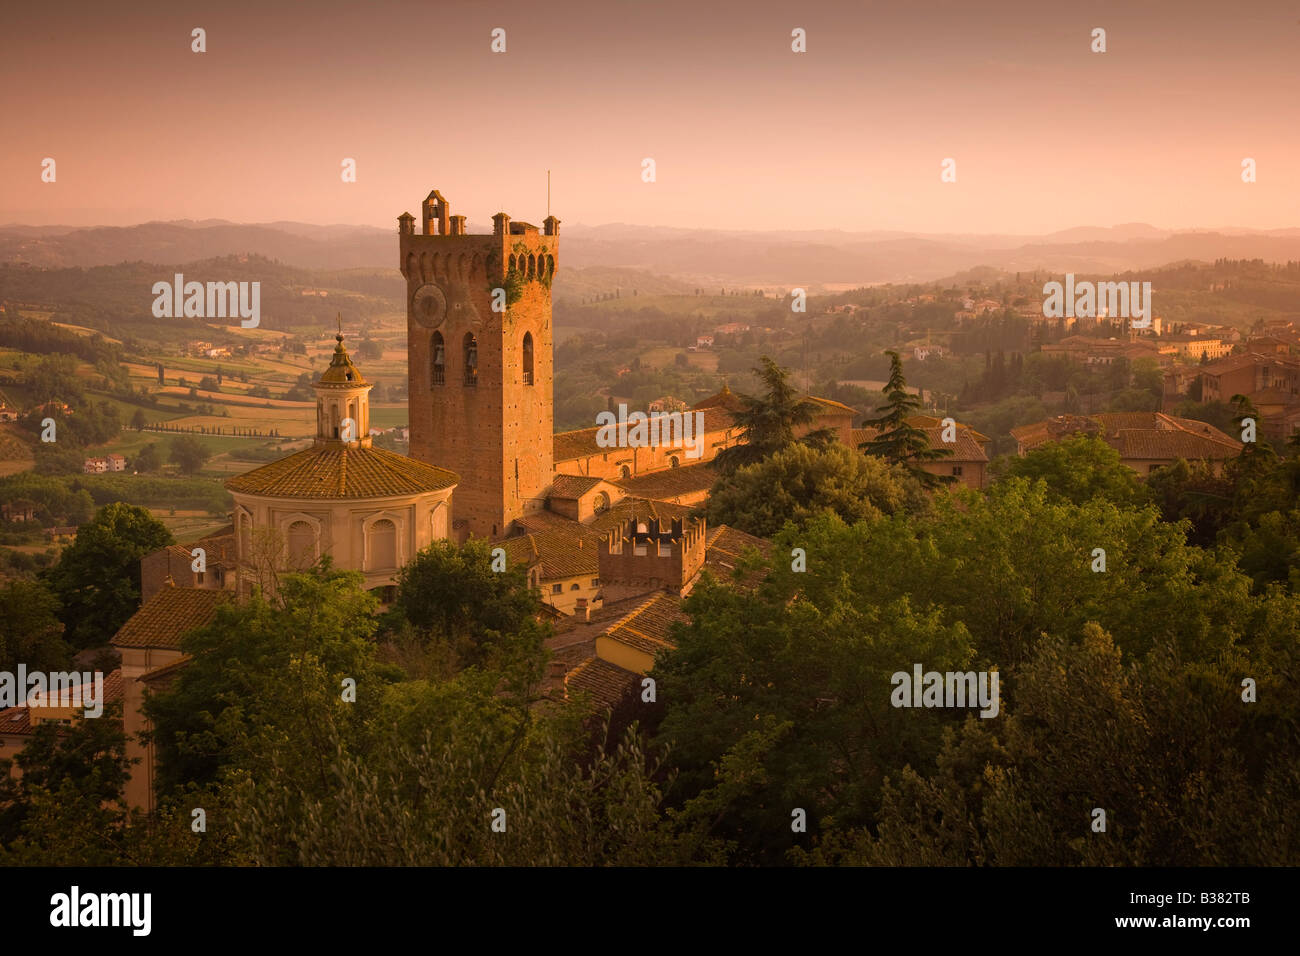 View over Tuscan hills from San Miniato in Tuscany in Italy - Stock Image